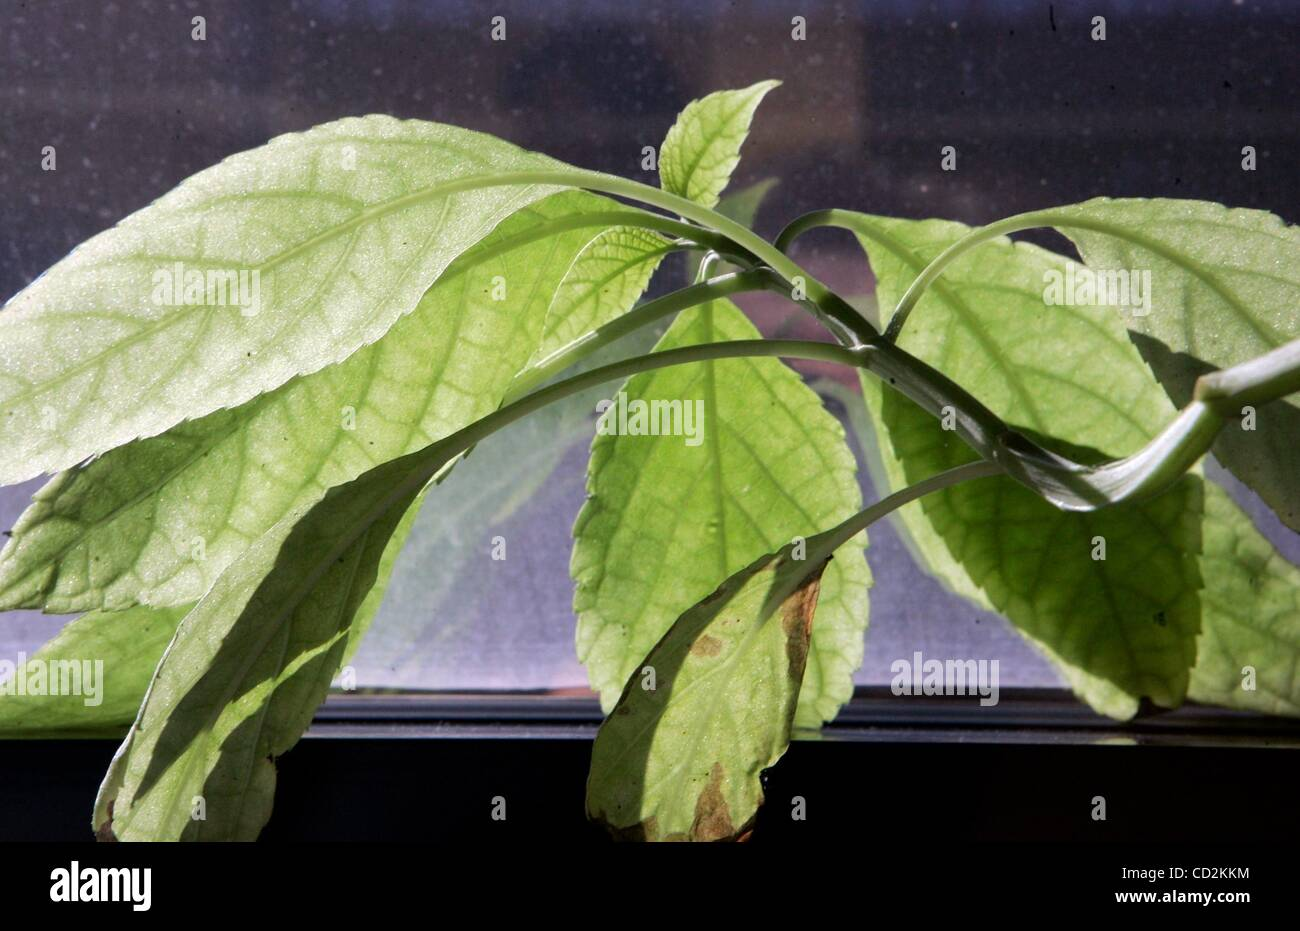 f0cb06694e Mar 11, 2008 - San Diego, California, USA - Detail view of a salvia  divinorum plant witt a label showing it common name growing in the office  of SDSU ...